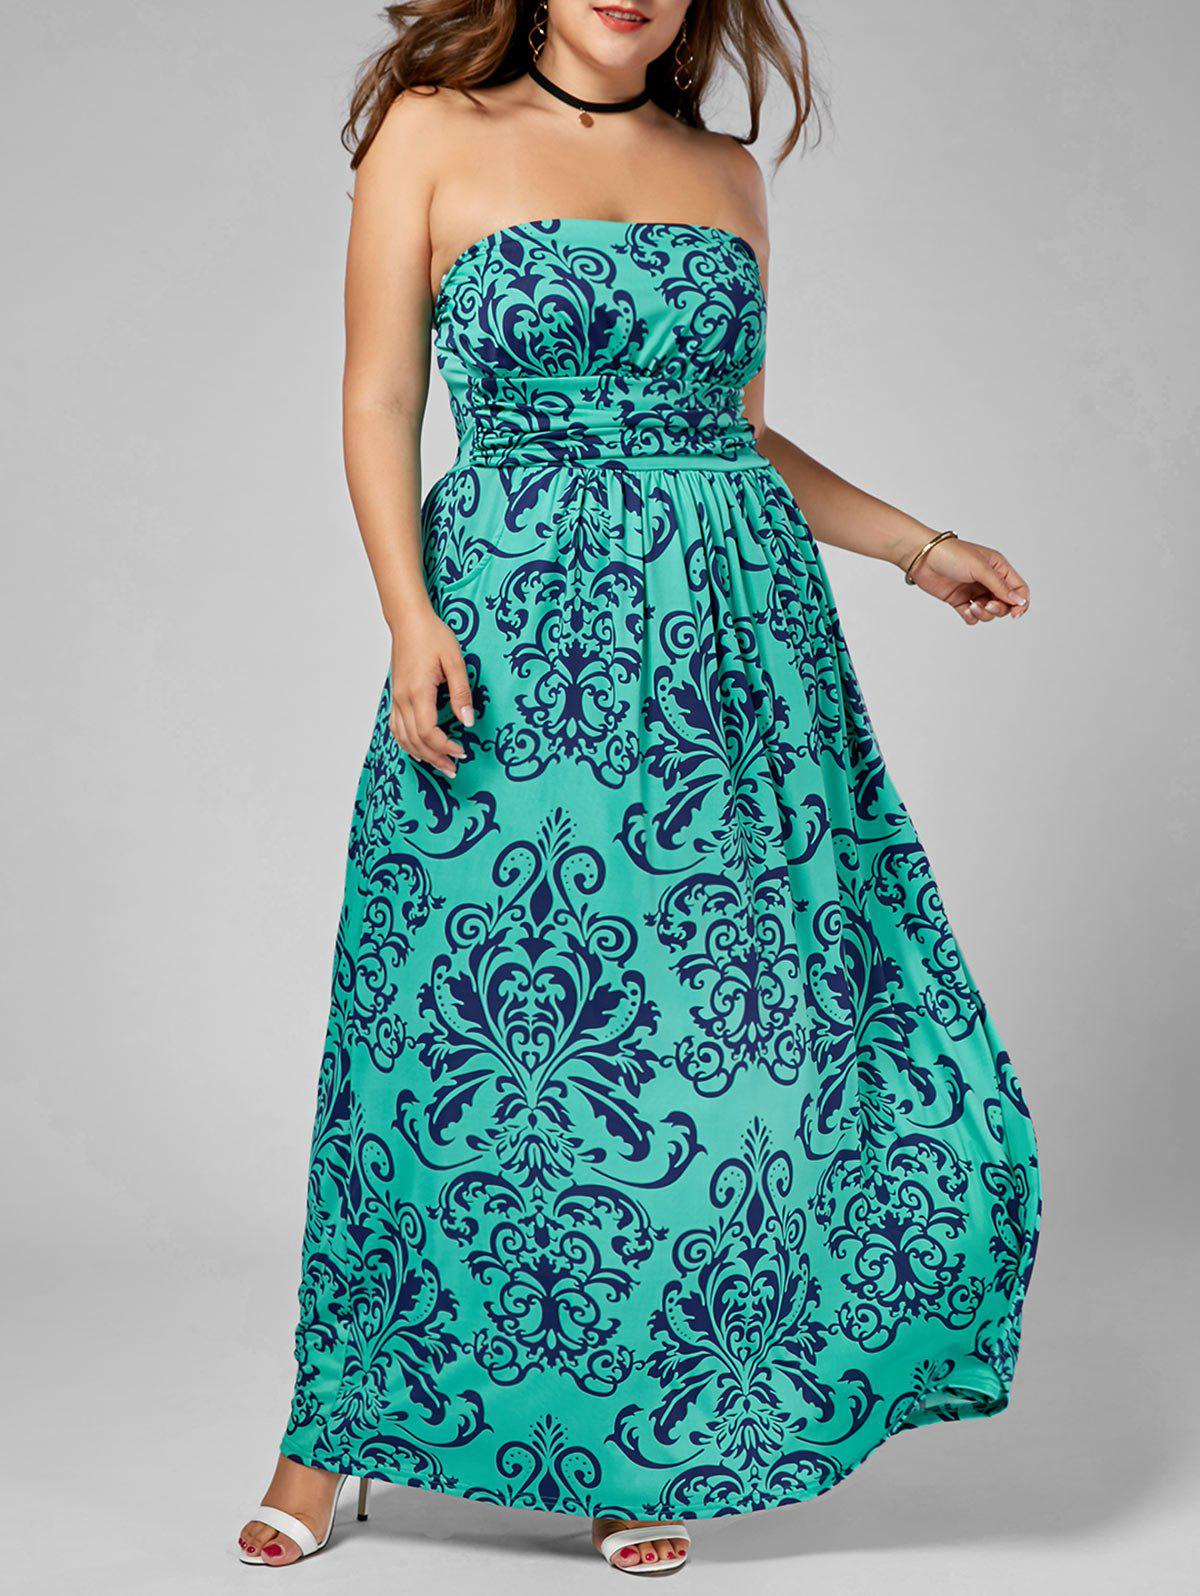 Printed Floor Length Plus Size Strapless Dress - multicolor 5XL